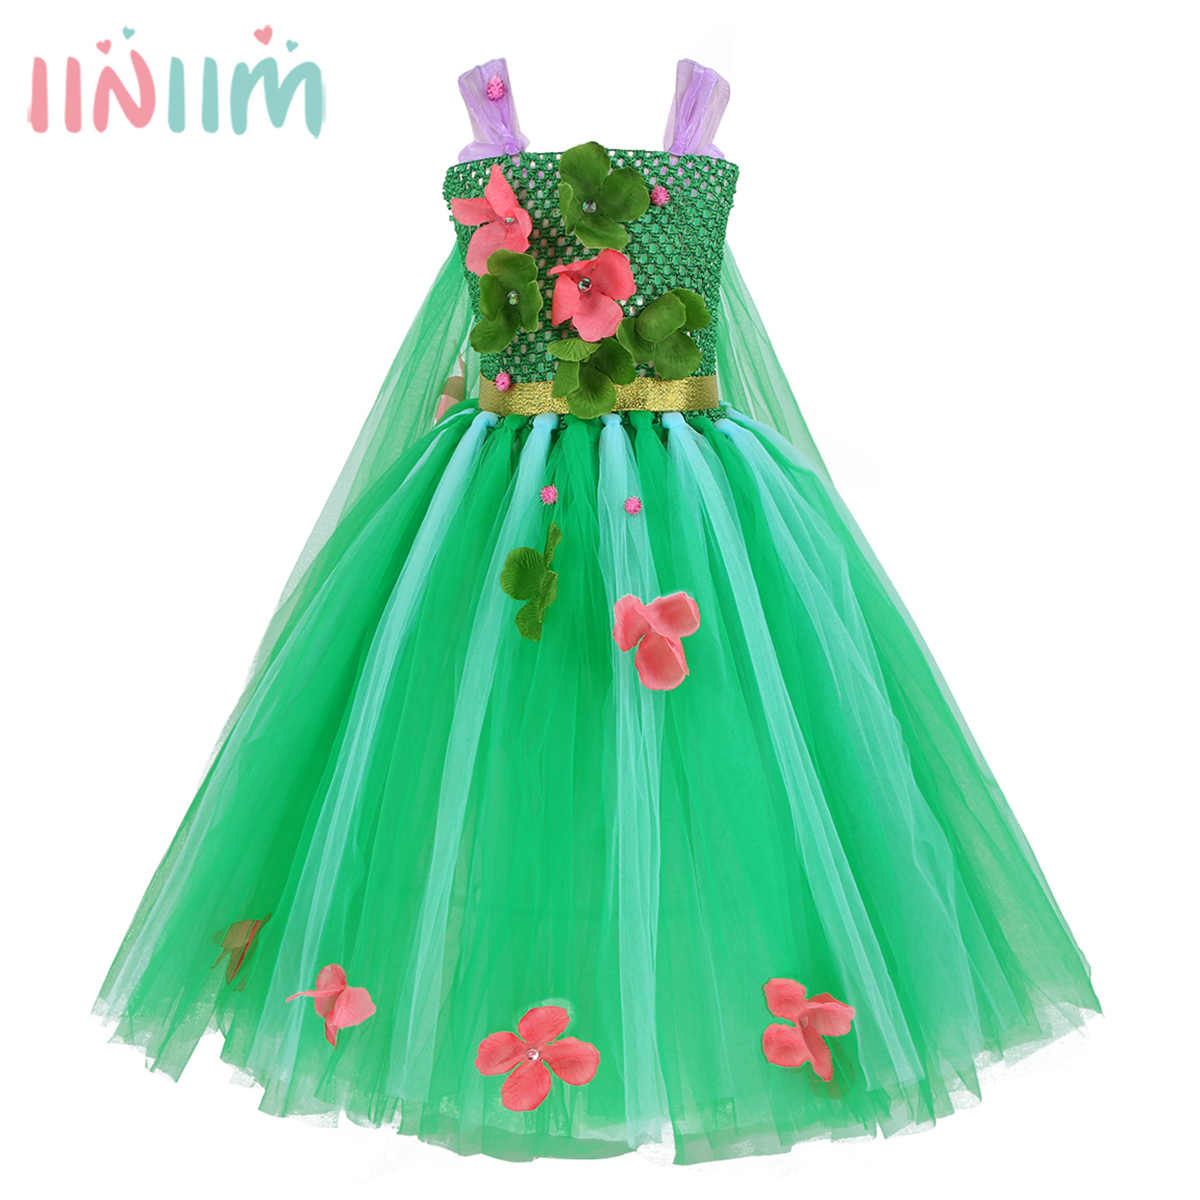 8cee9503a Green Baby Girls Summer Flowers Princess Dress Tulle Vestidos for Halloween  Costumes Cosplay Party Fancy Tutu